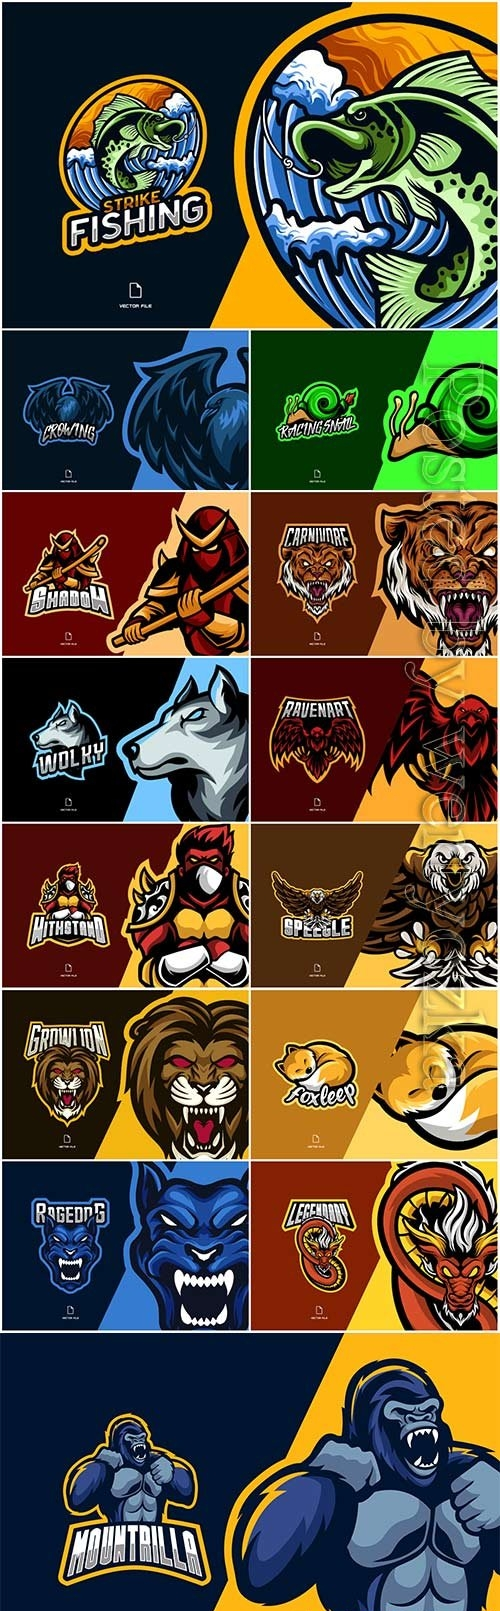 Mascot esport logo design premium vector vol 24